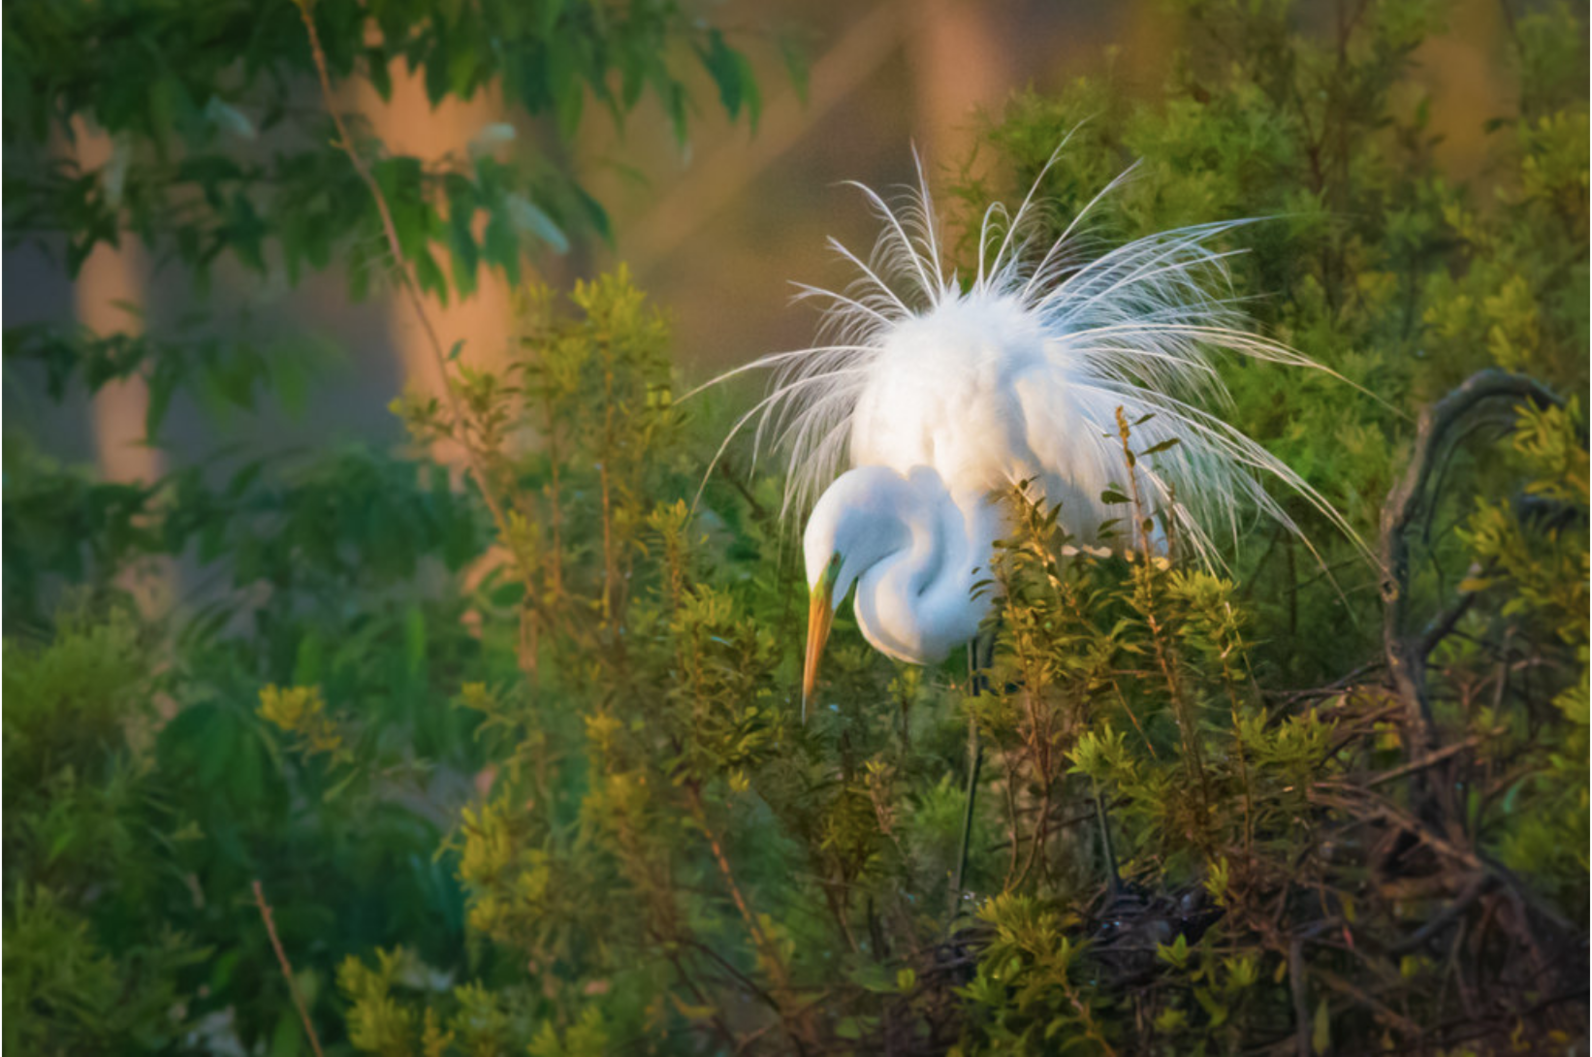 Great White Egret displaying its breeding plumage in the golden hour.